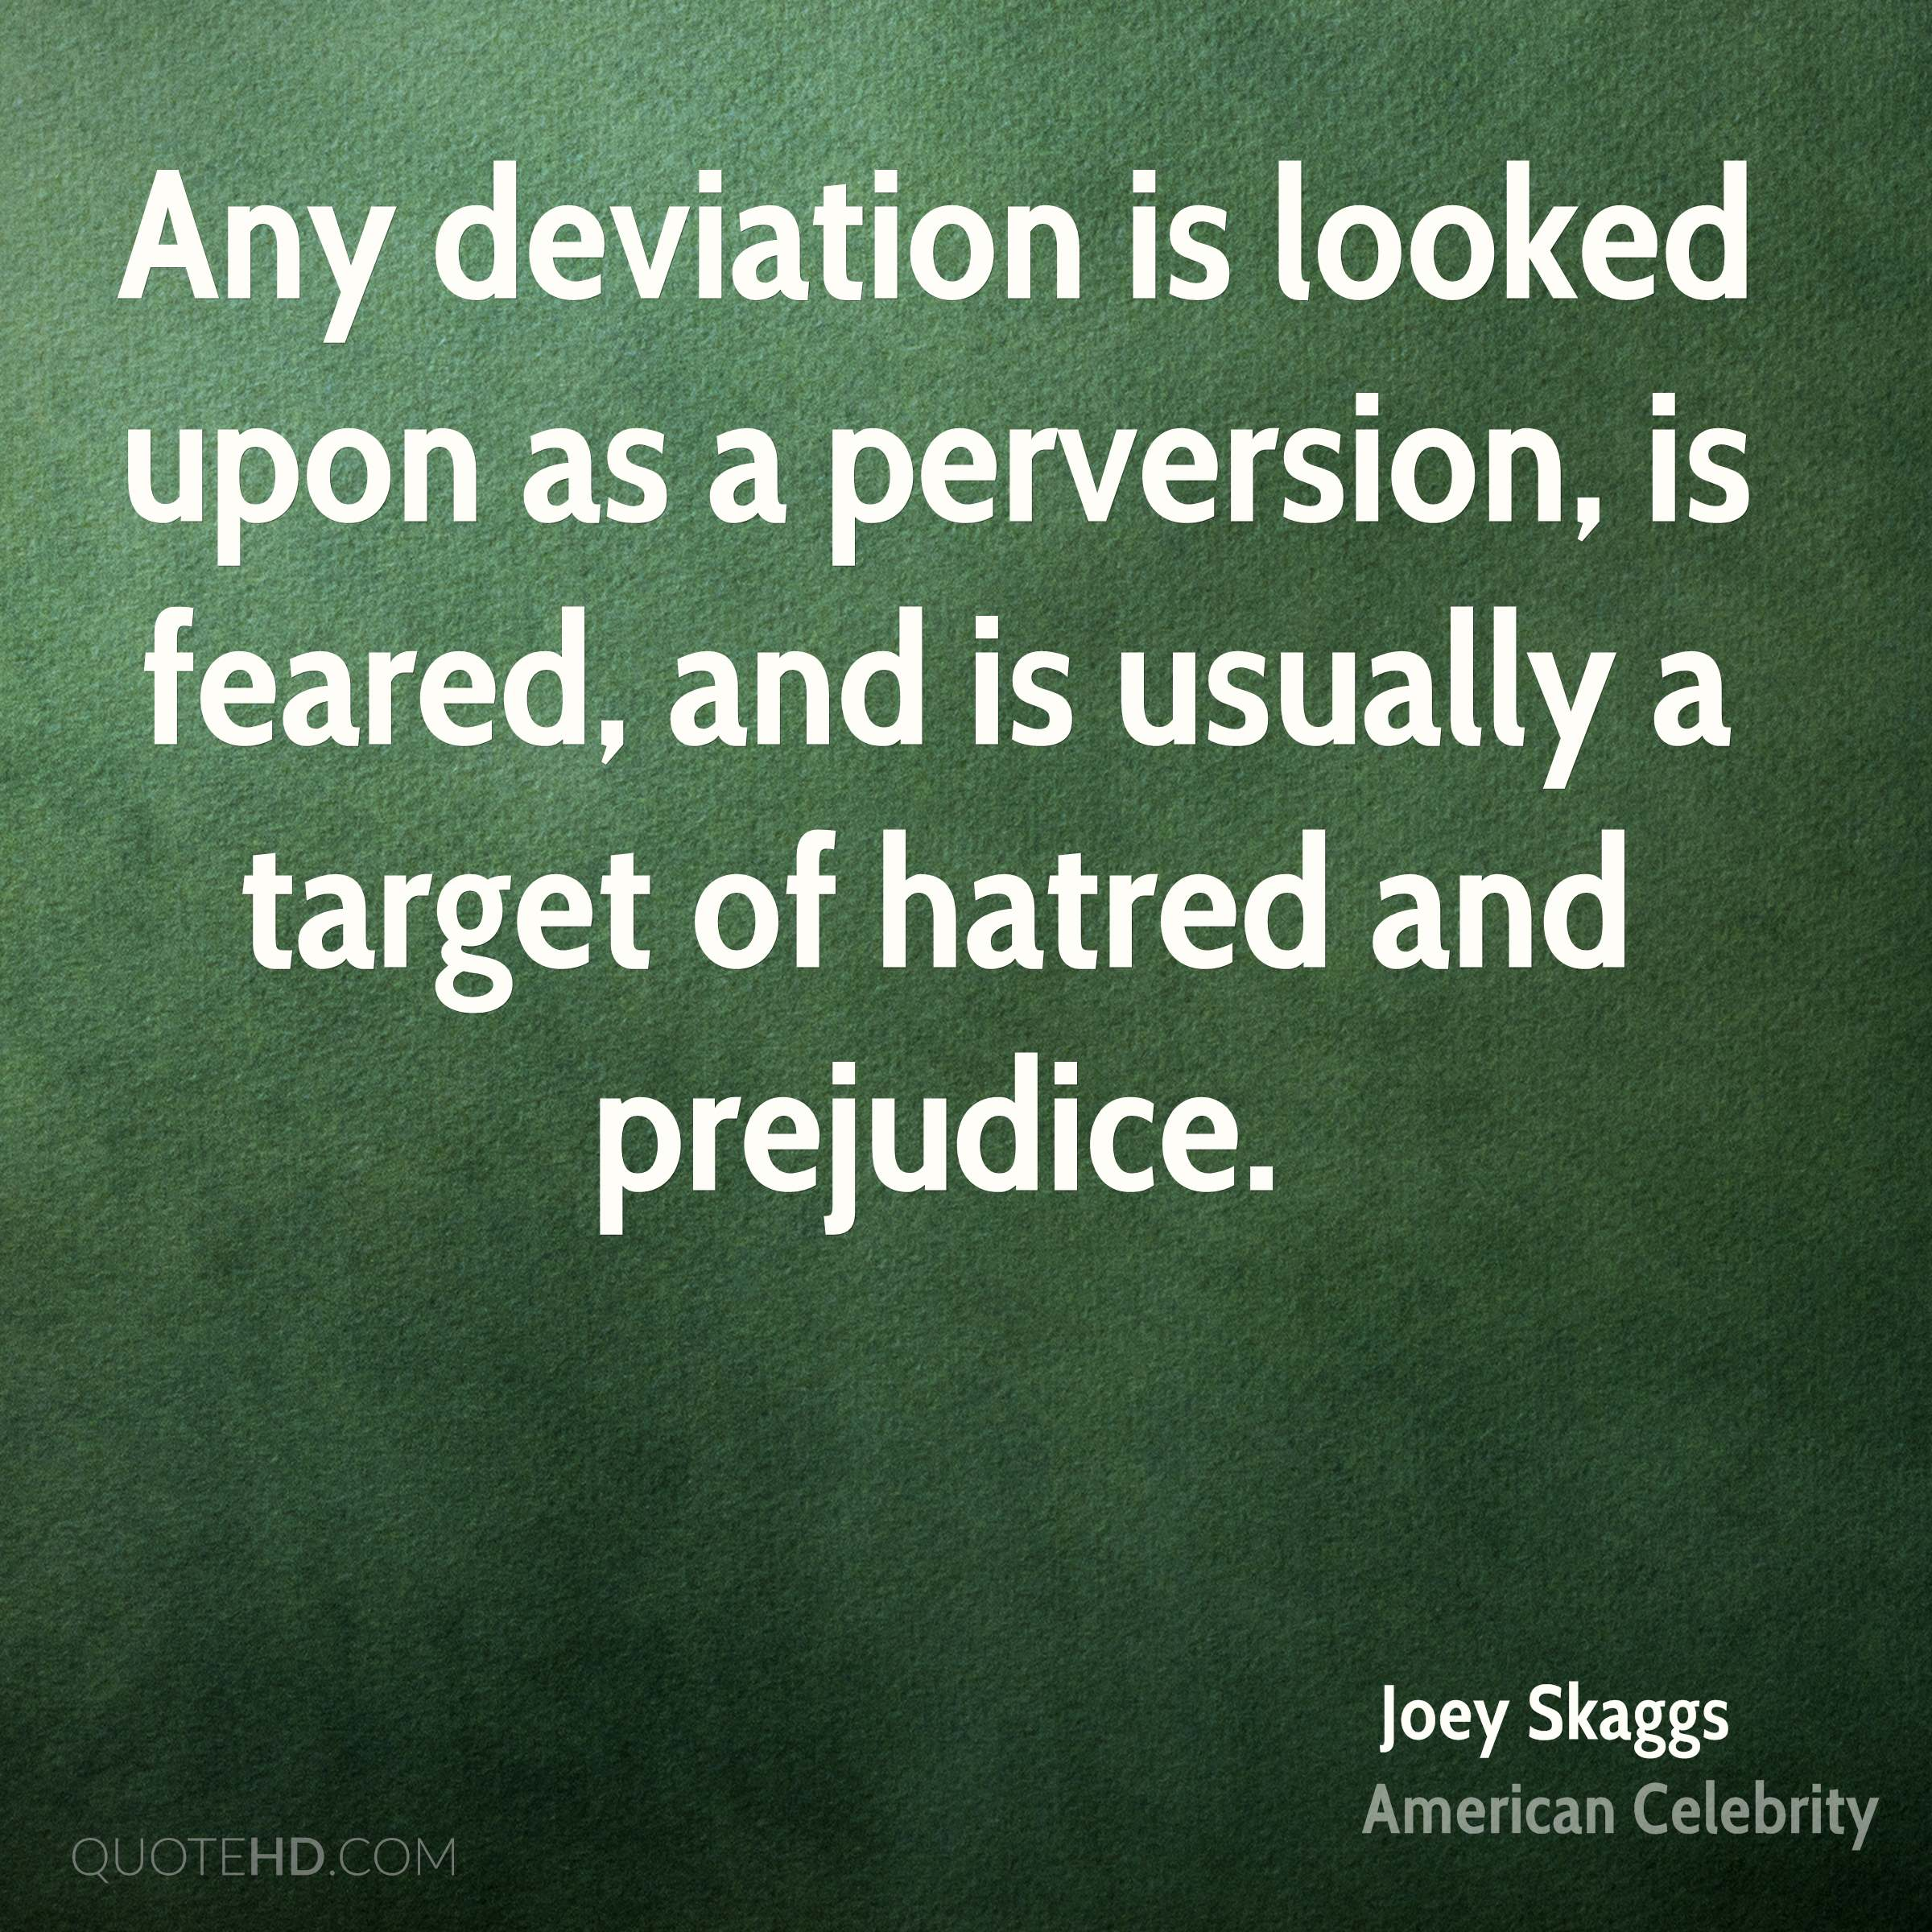 Any deviation is looked upon as a perversion, is feared, and is usually a target of hatred and prejudice.